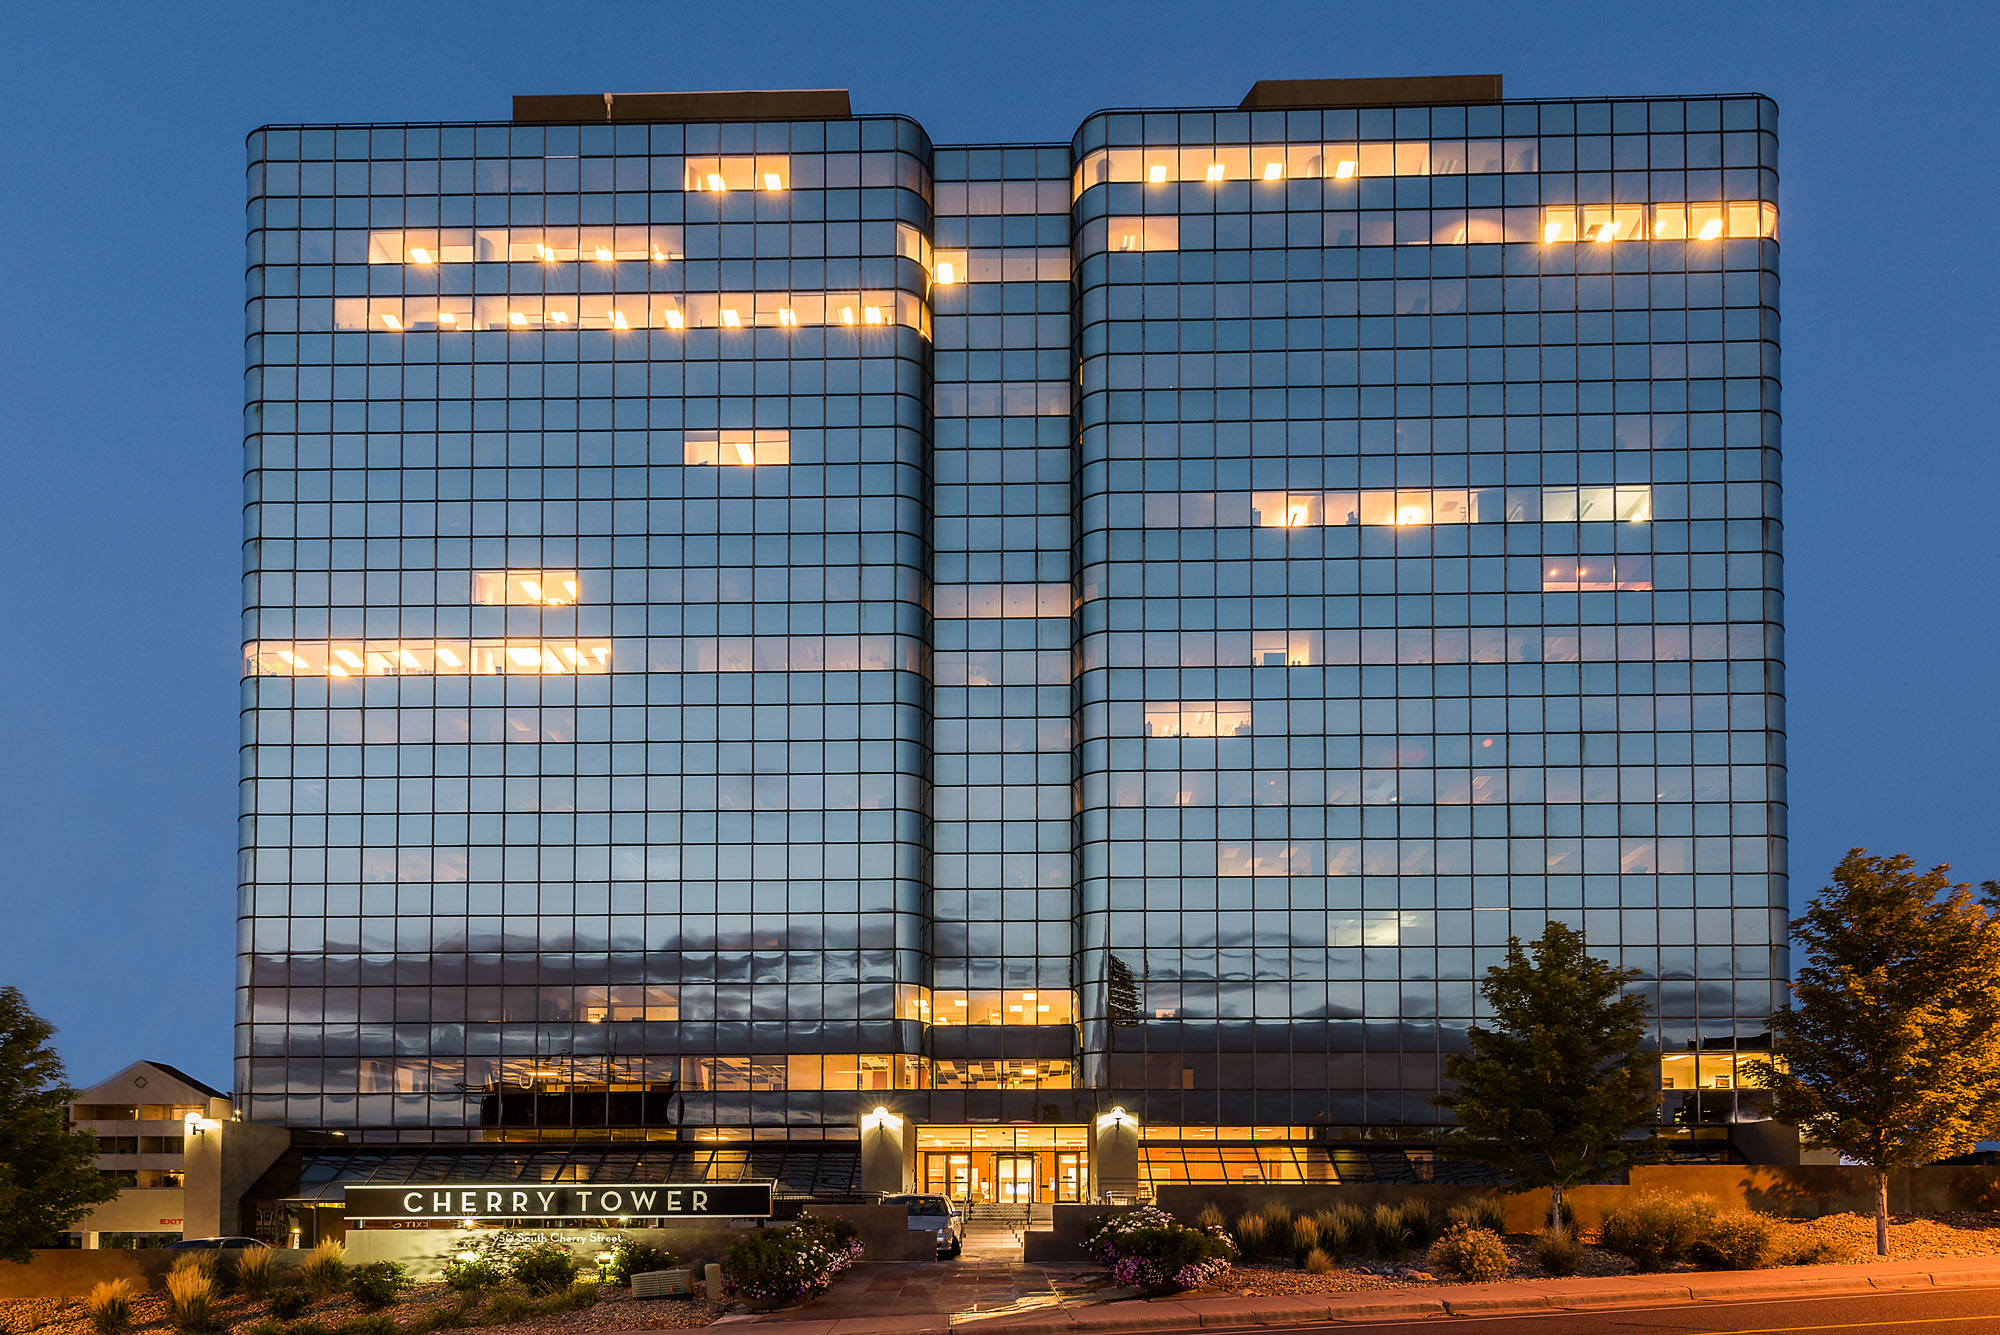 Commercial Real Estate Twilight Photography